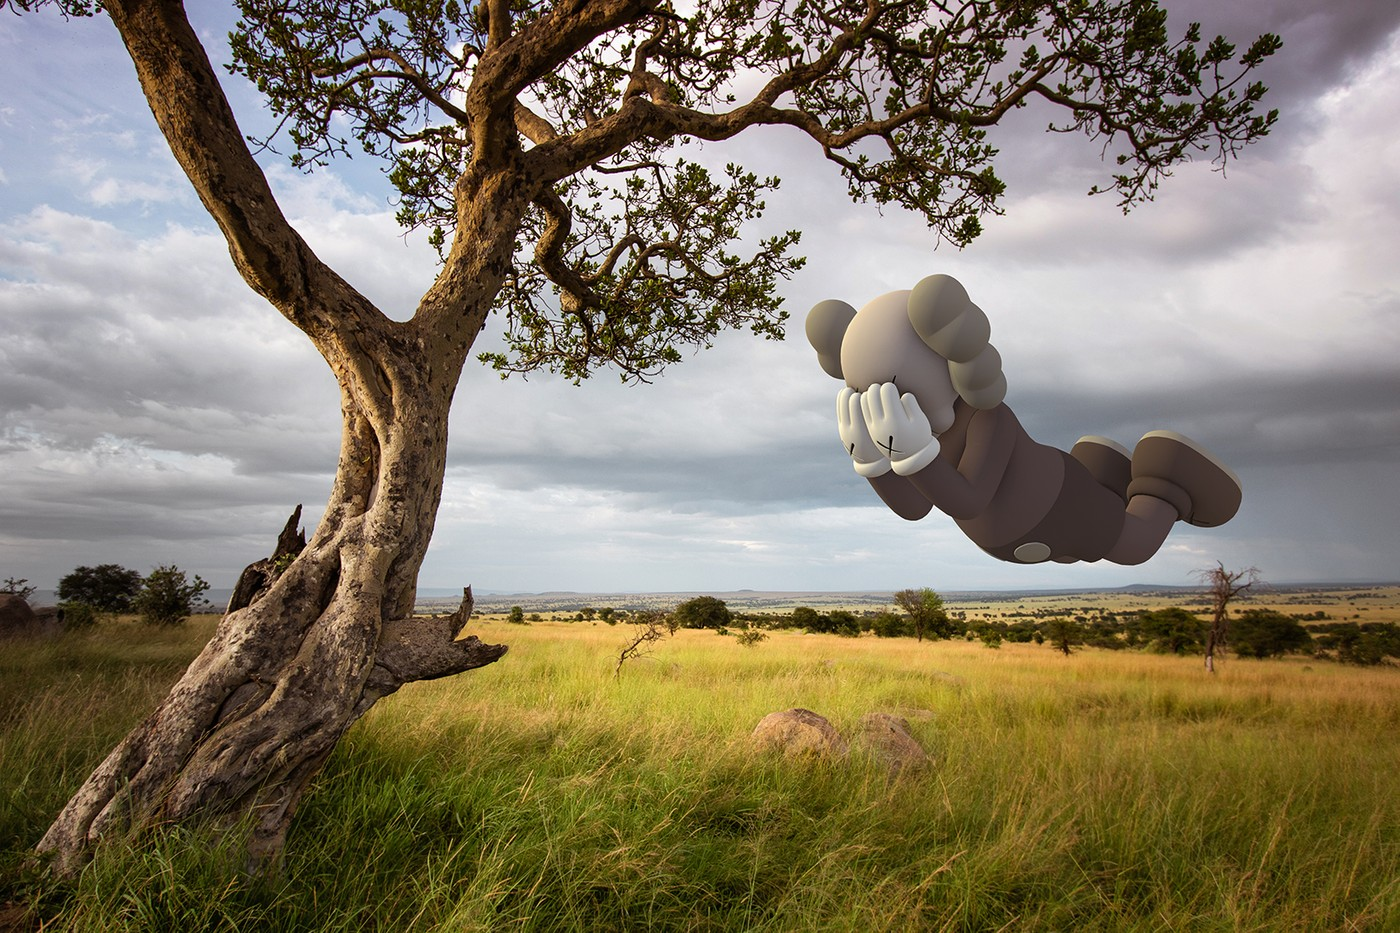 kaws companion sculpture acute art app collaboration expanded holiday augmented reality exhibition Brian donnelly